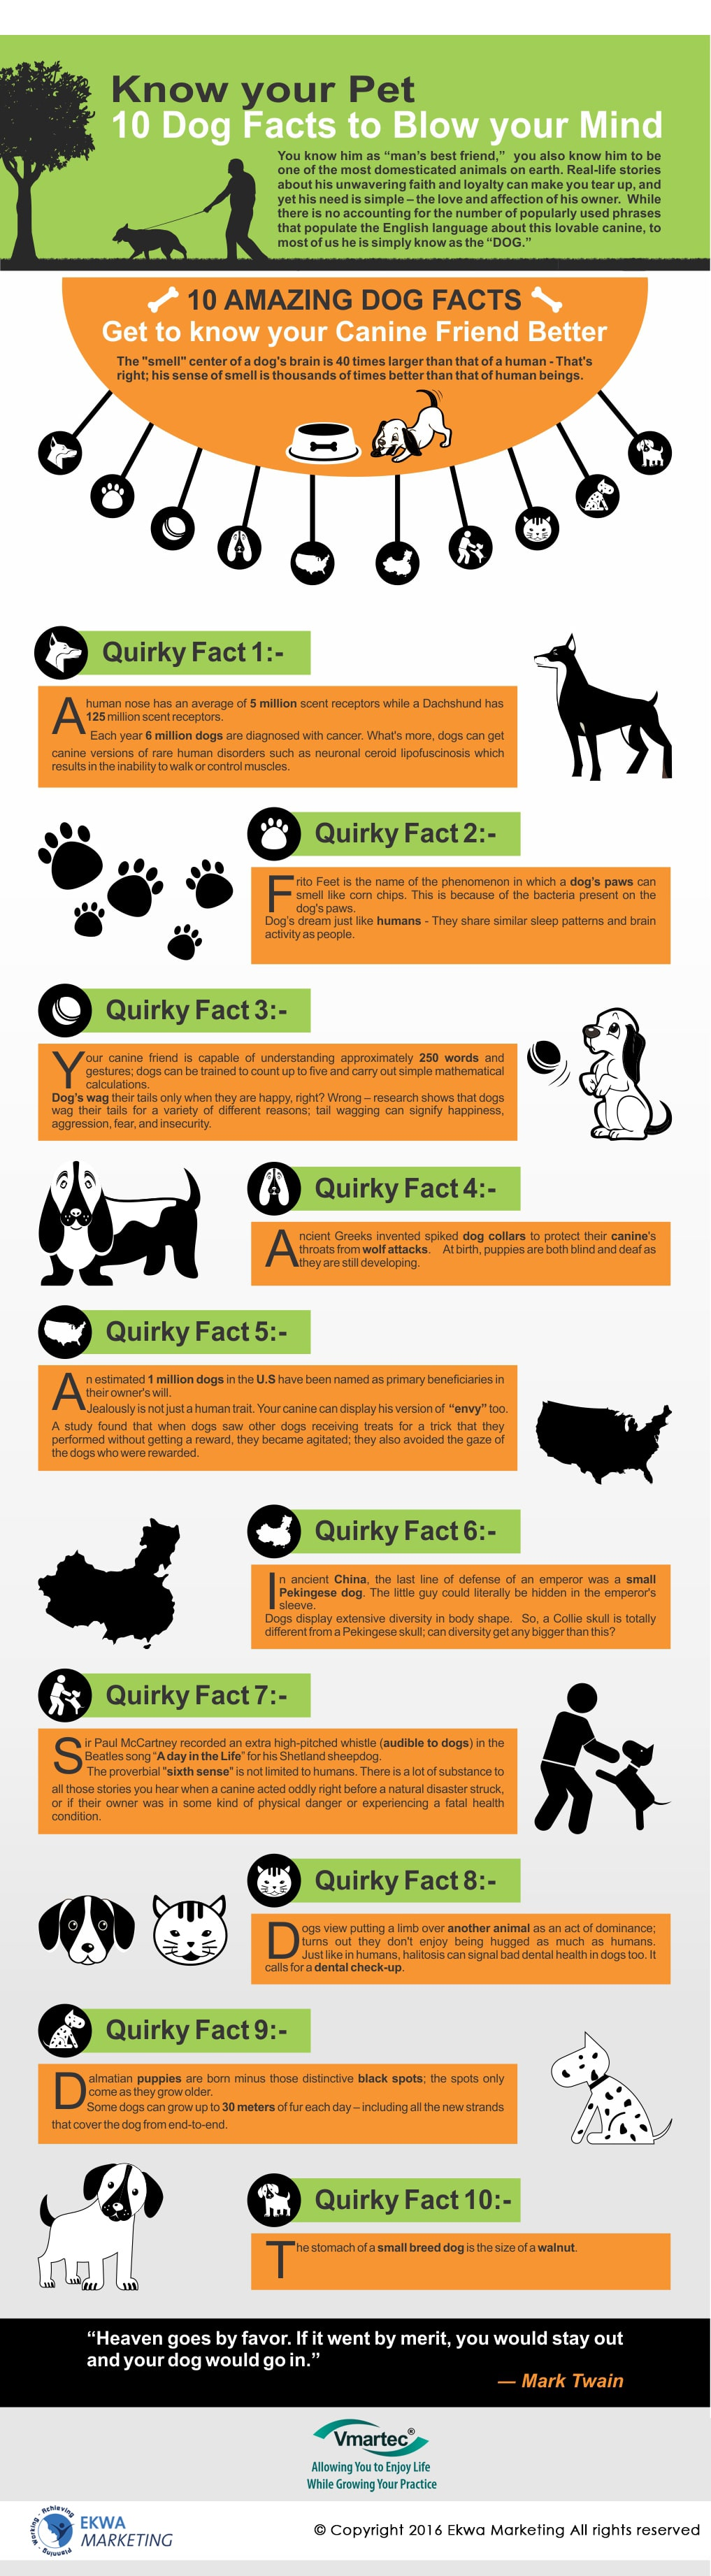 Vmartec, 10 Dog Facts to Blow your Mind